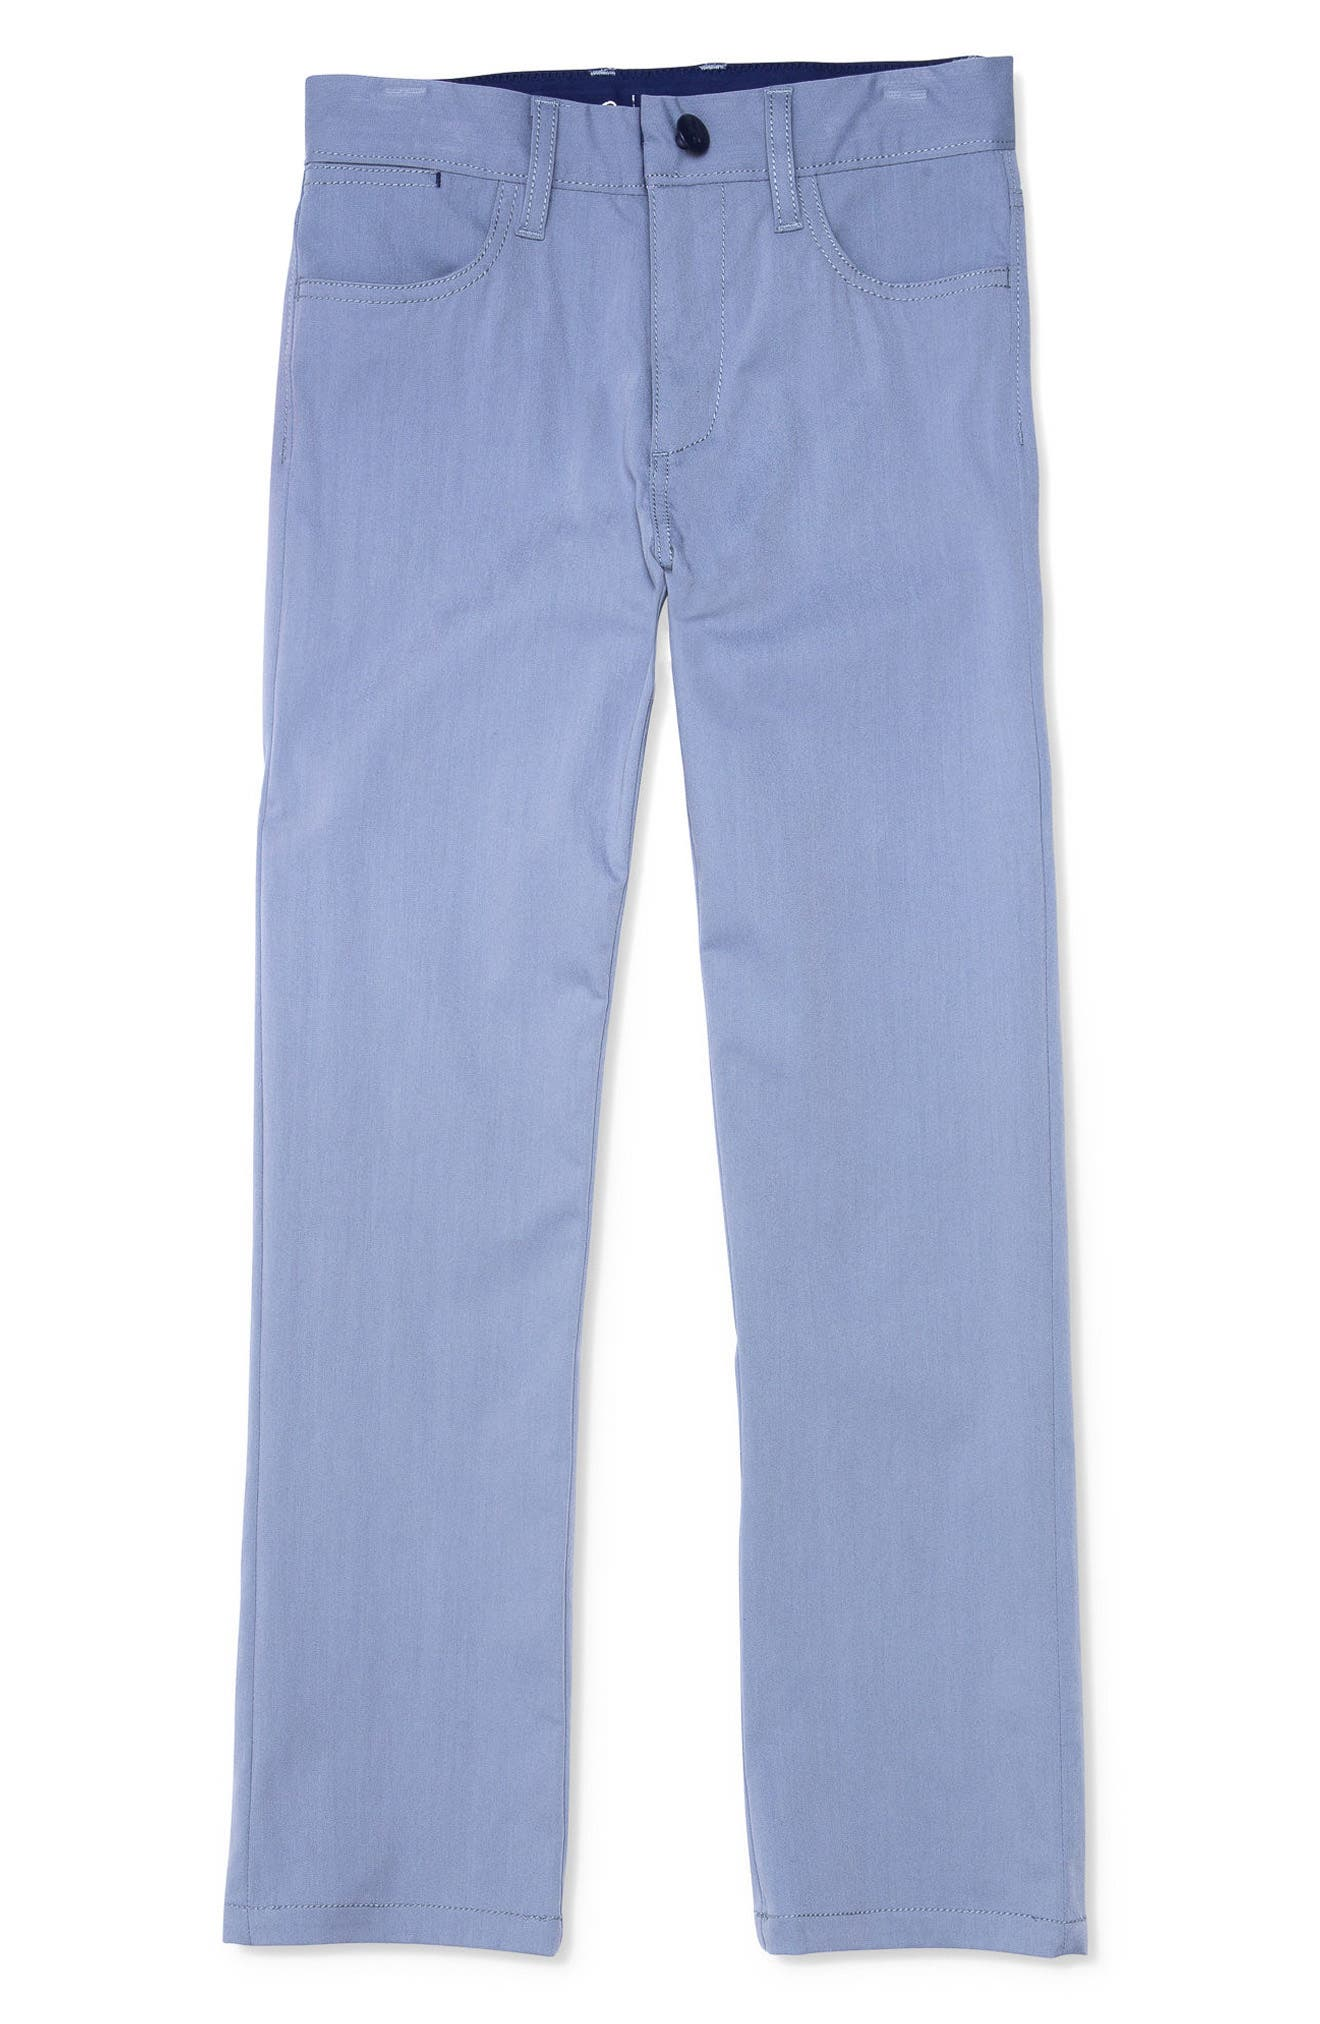 Marin Pants,                         Main,                         color, Cloudbreak